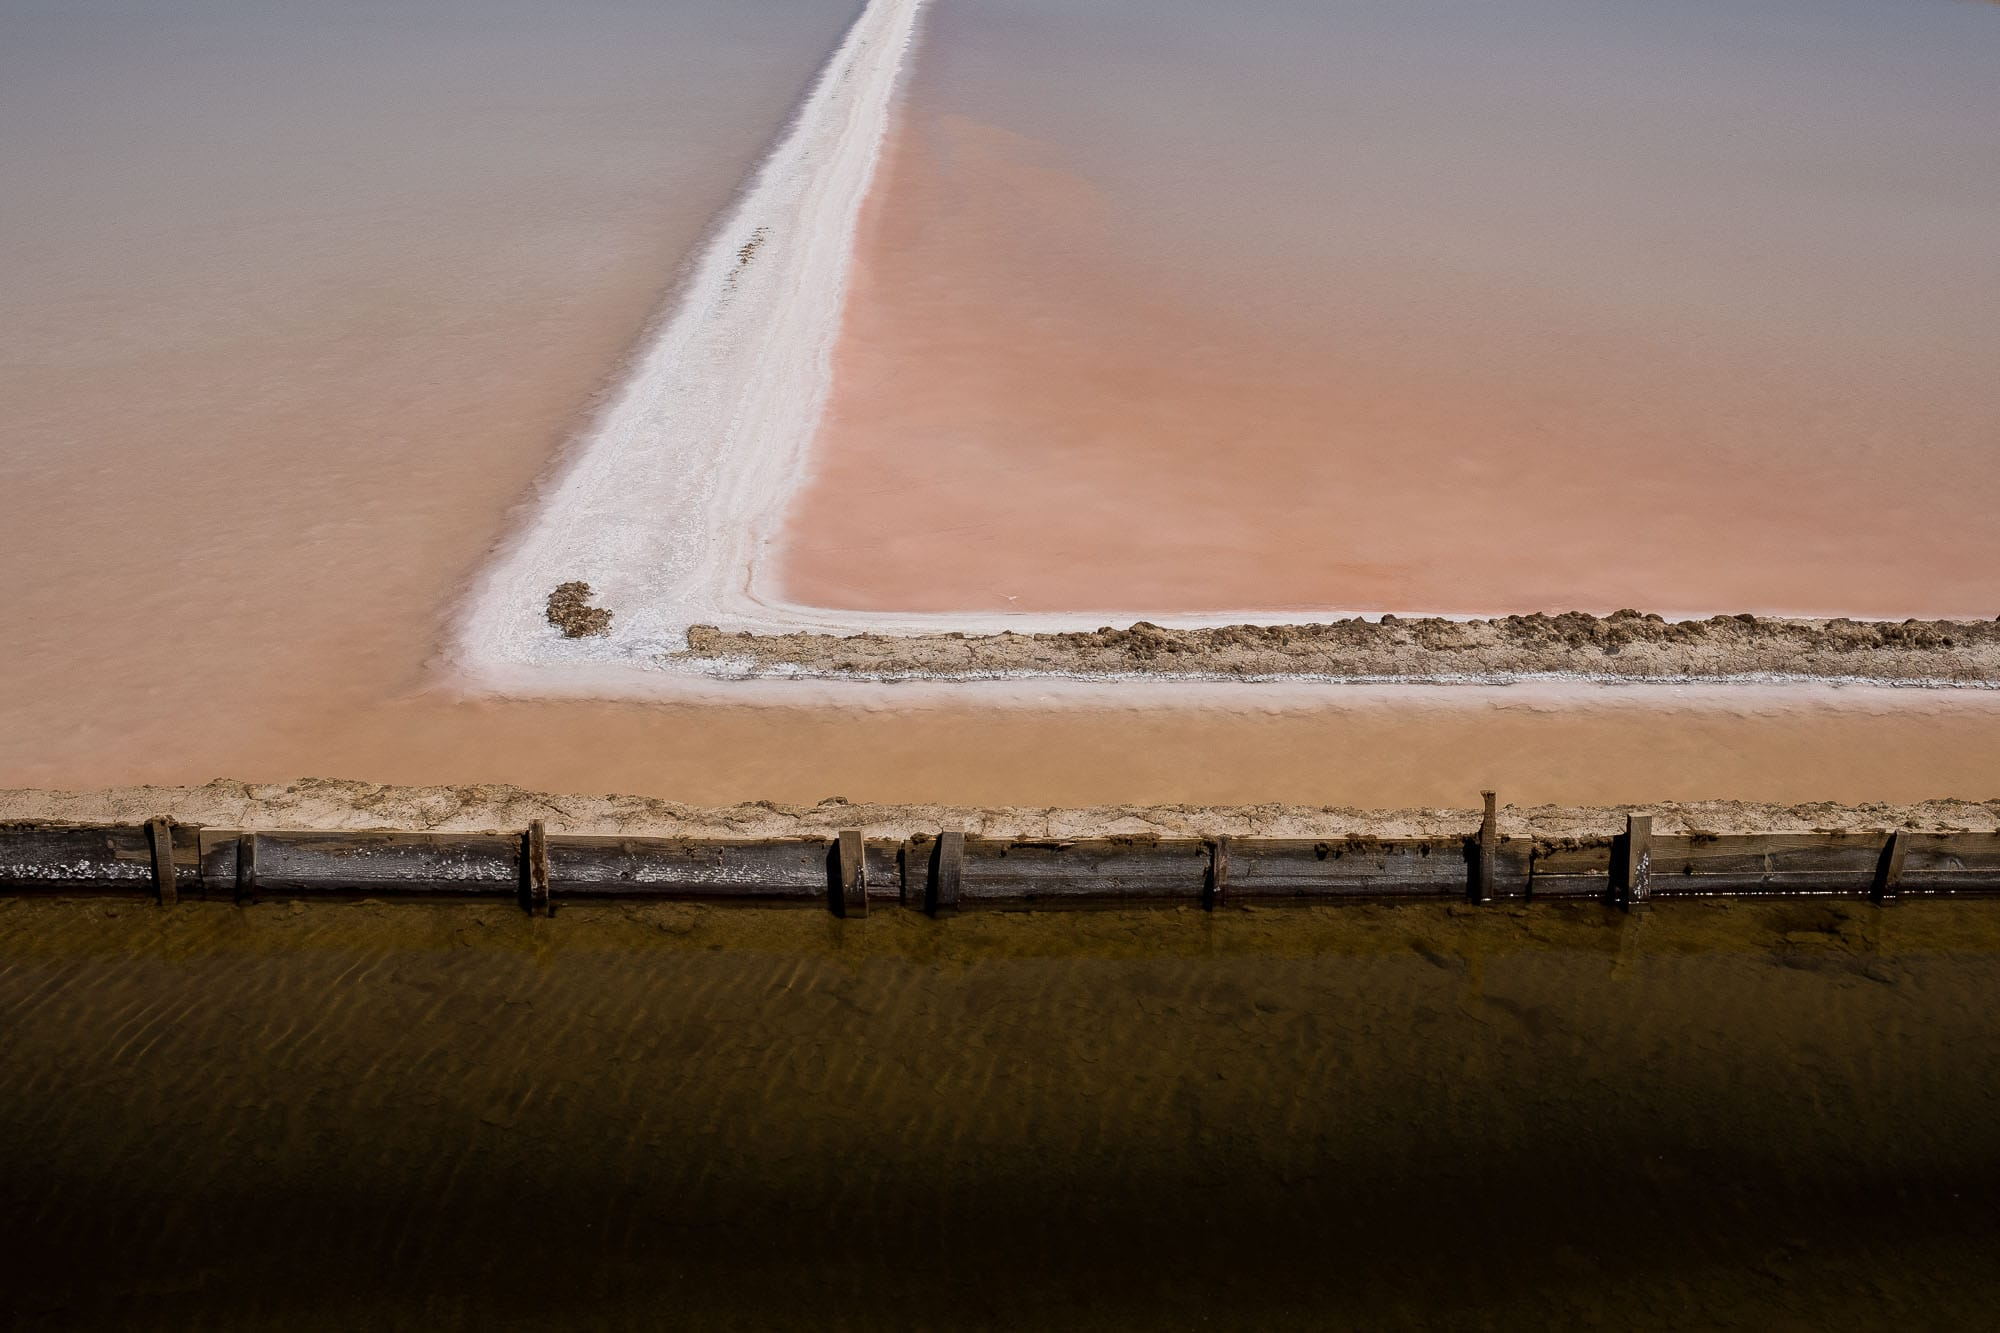 color photography inspiration, color in photography, examples of color in photography, photography of color, photography colours | Photo: Saltpans in Tavira, Portugal | Copyright Karin van Mierlo, Photography Playground